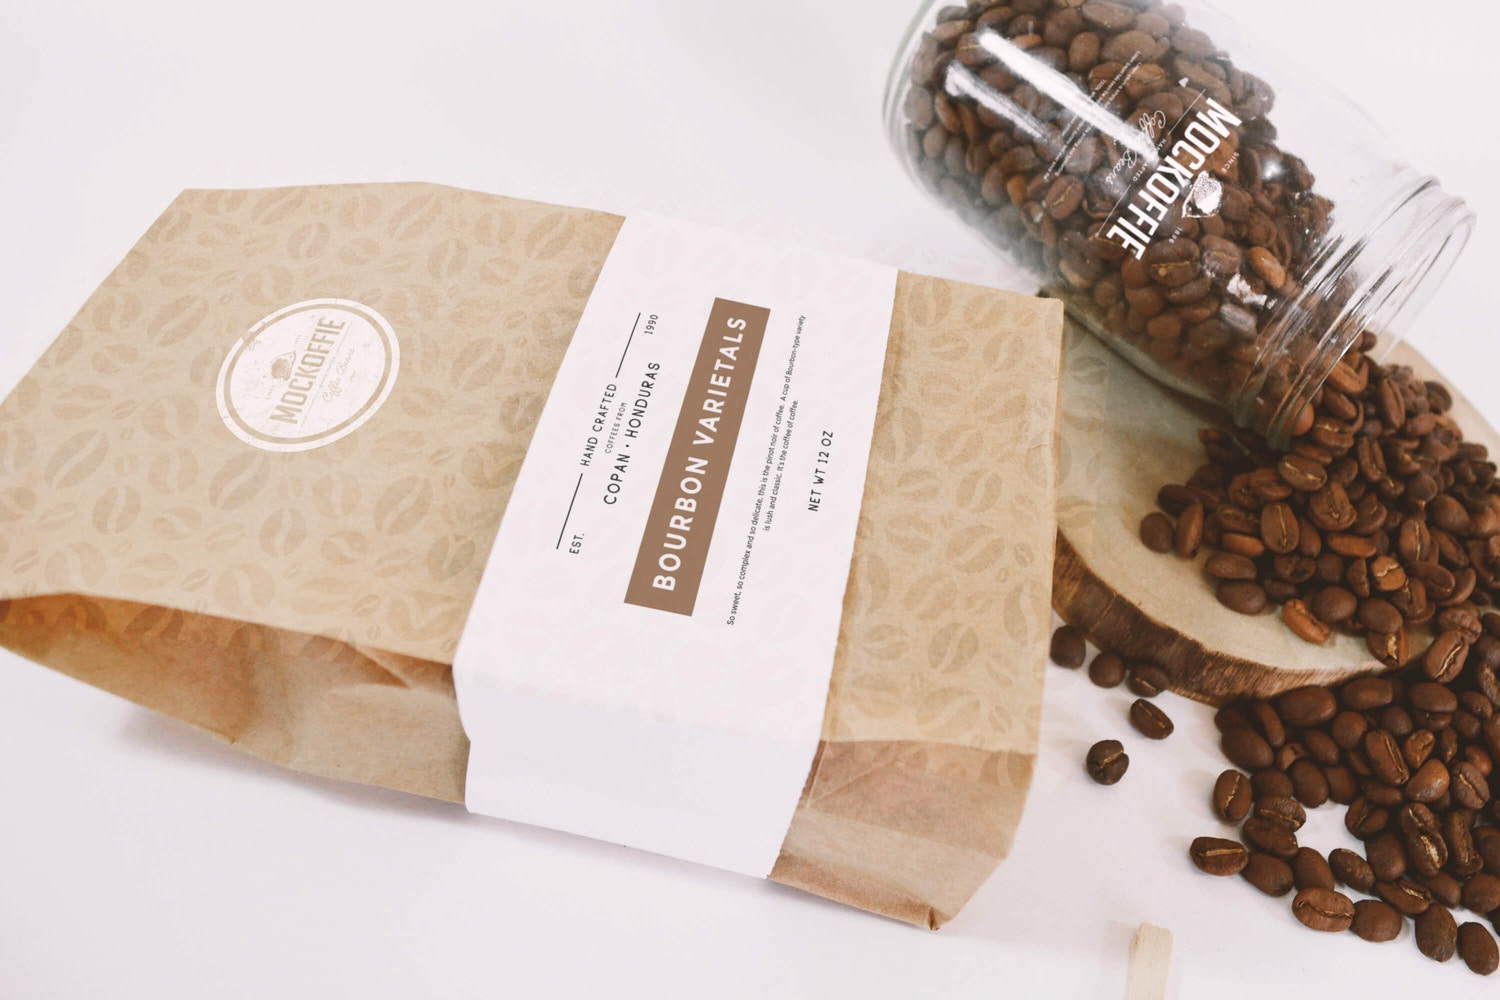 Coffee Bag and Glass Jar Mockup - Perspective Top View (1) by Eduardo Mejia on Original Mockups